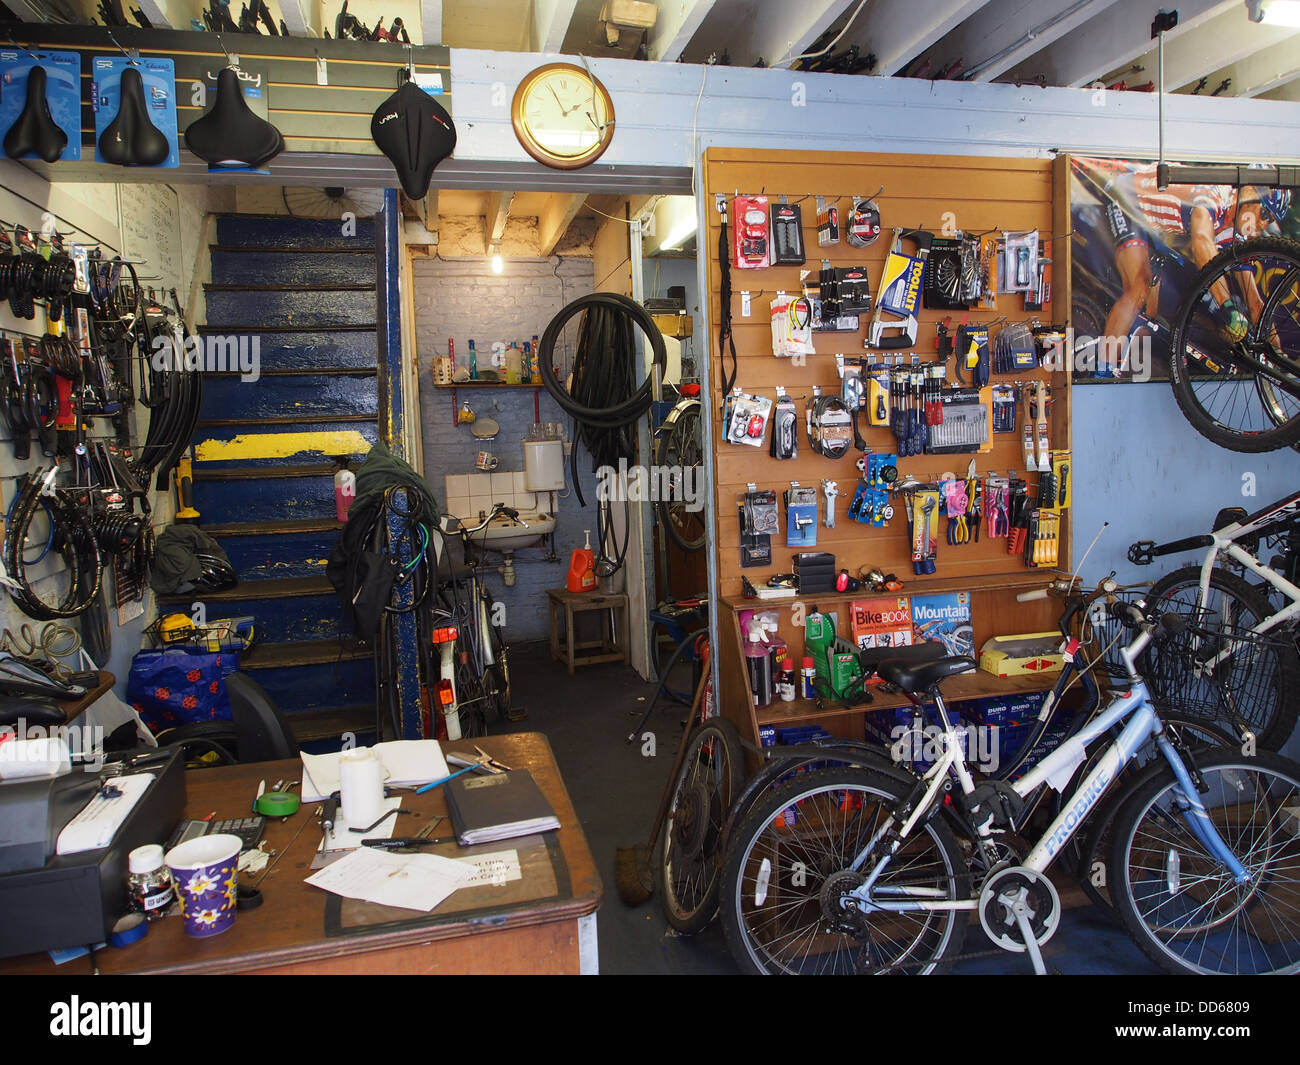 Bicycle Repair Stock Photos & Bicycle Repair Stock Images